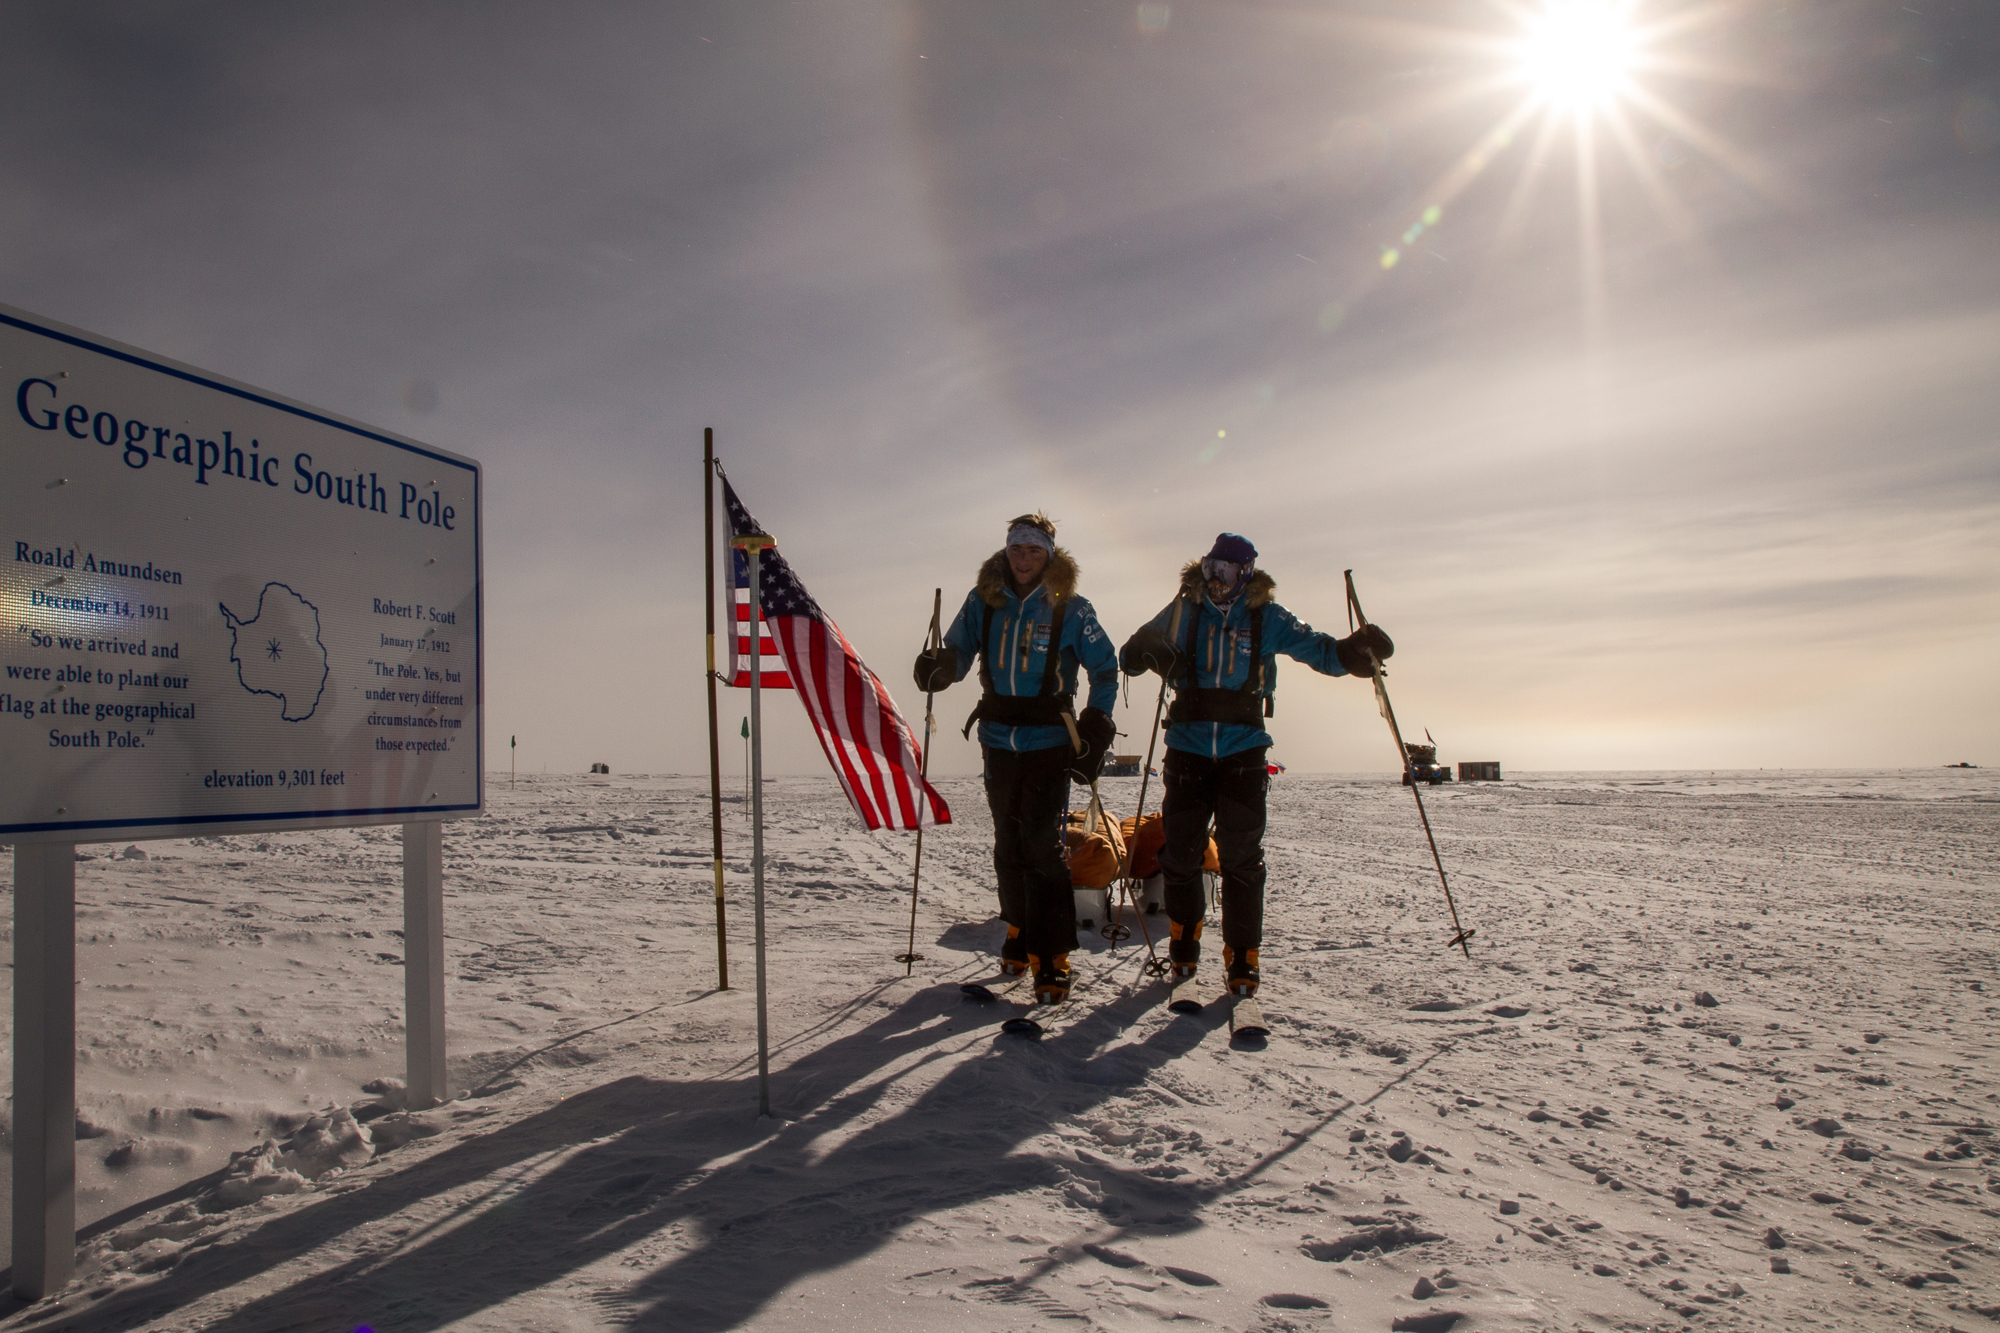 Expedition Reaches The South Pole